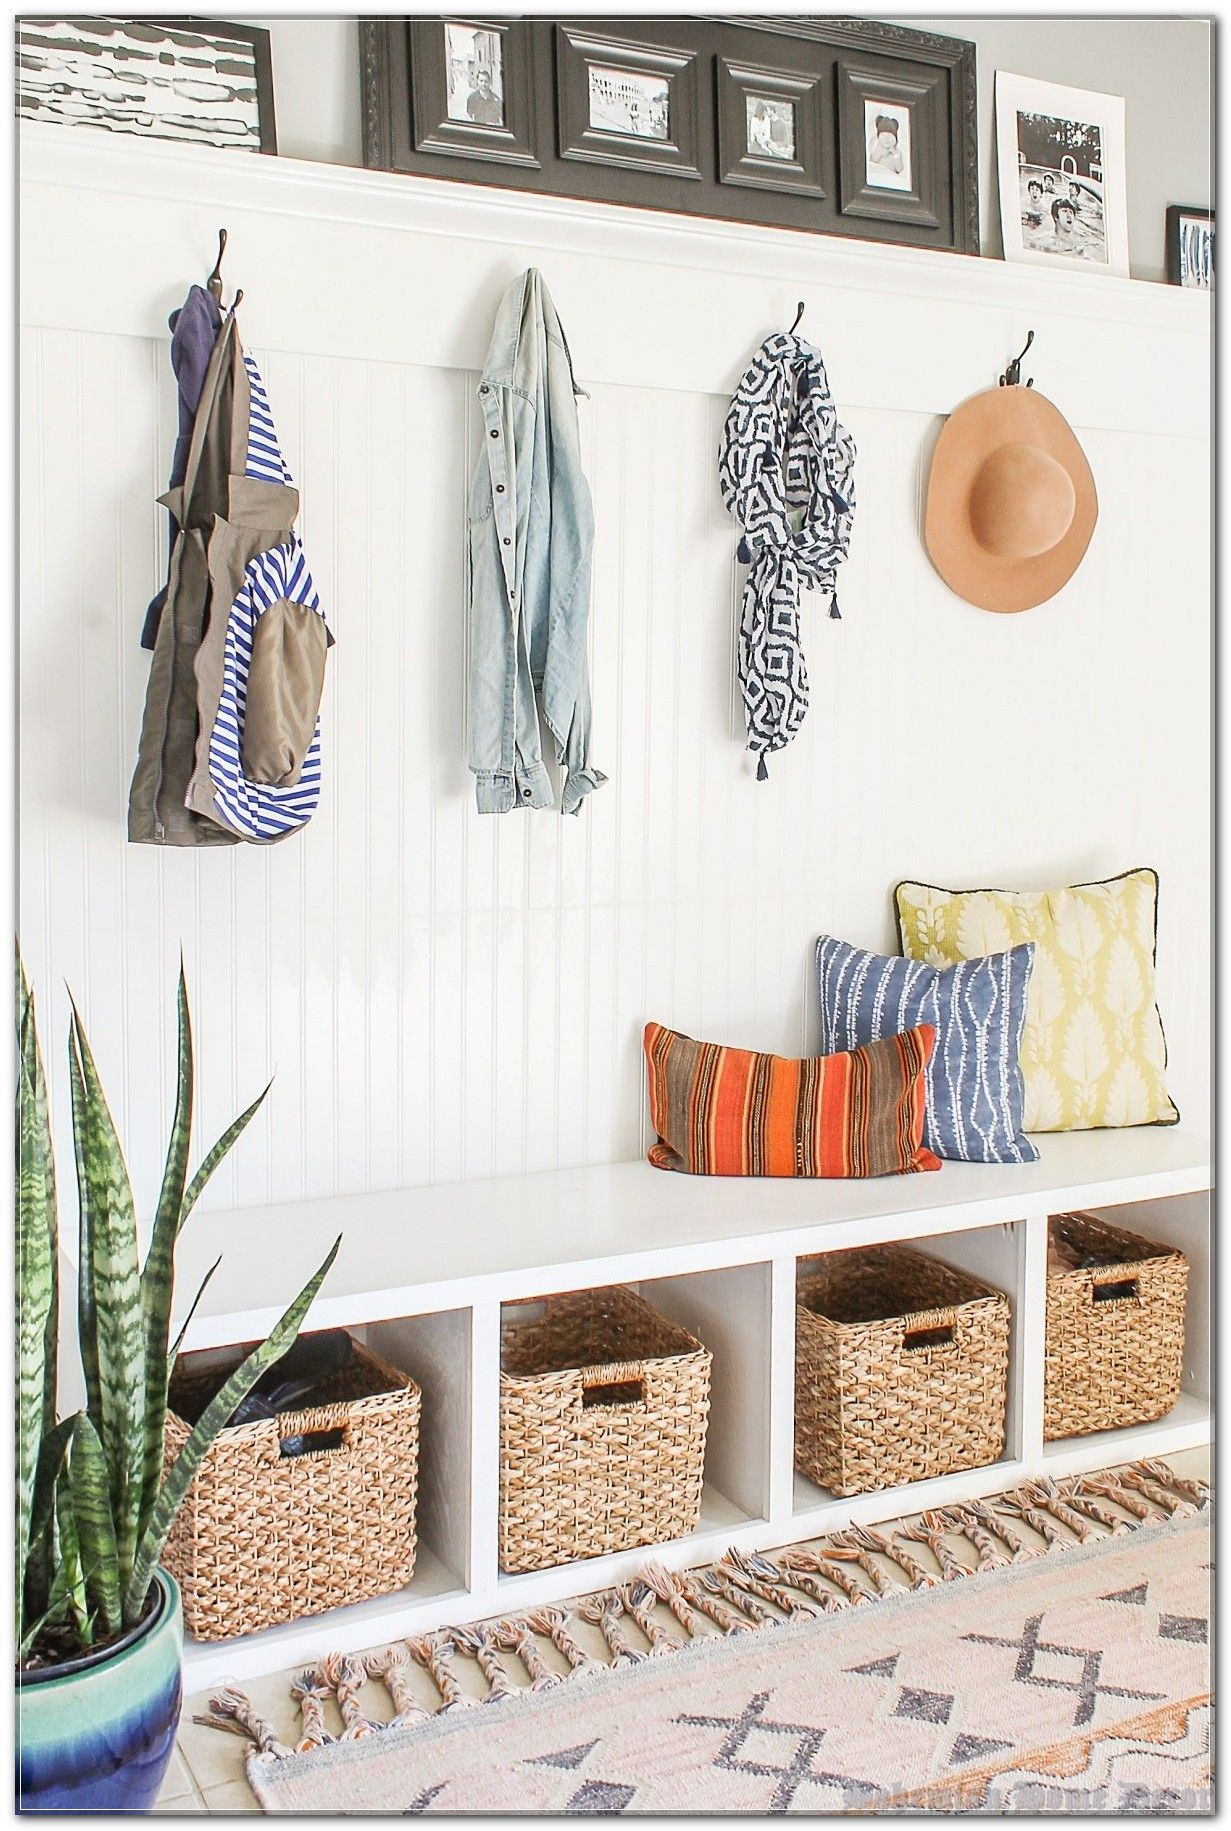 Succeed With Bohemian Home Decor In 24 Hours